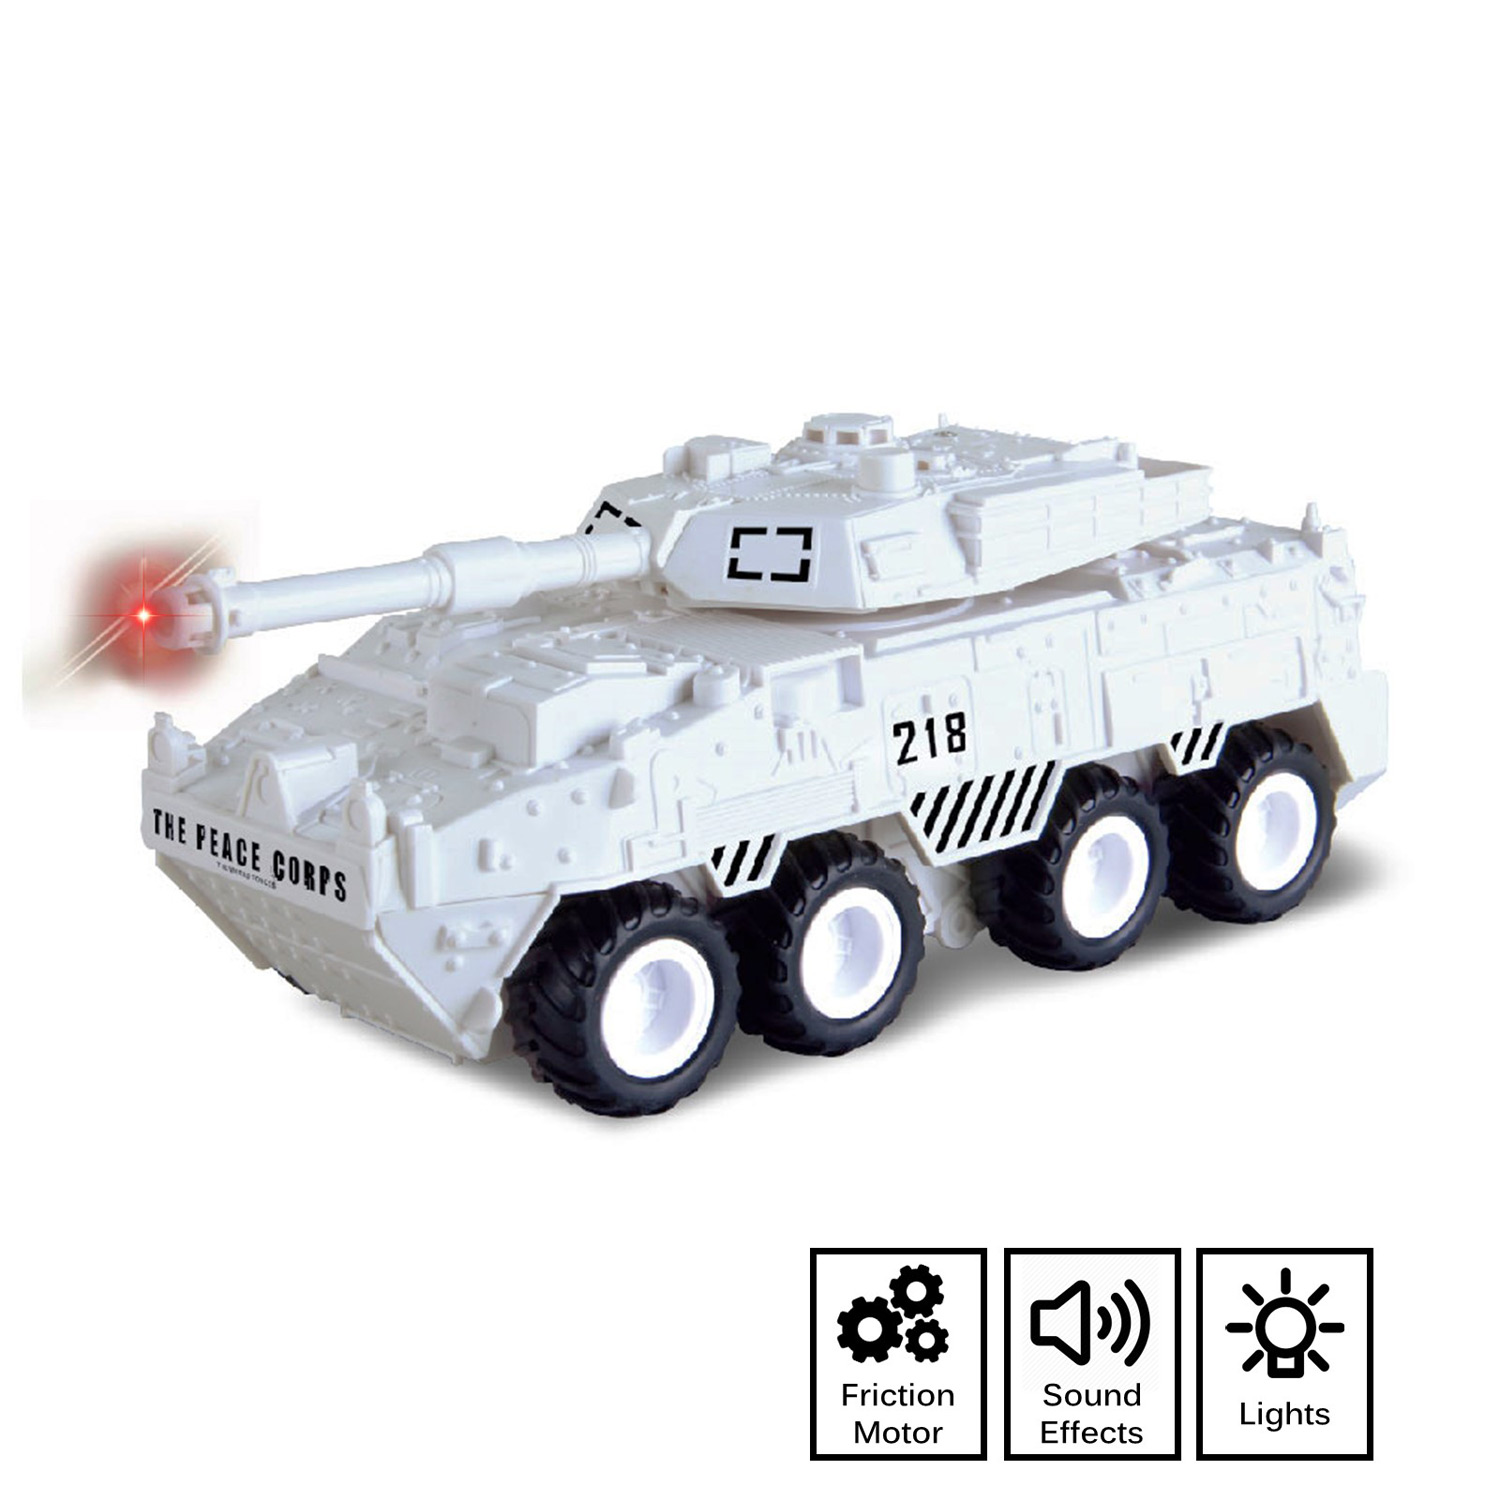 Military Battle Tank Toy Friction Powered Push And Go With Lights Sounds Nice Quality Details Pivoting Top Action Play Imagination Army Car Armored Vehicle Perfect Kids Gift Arctic White